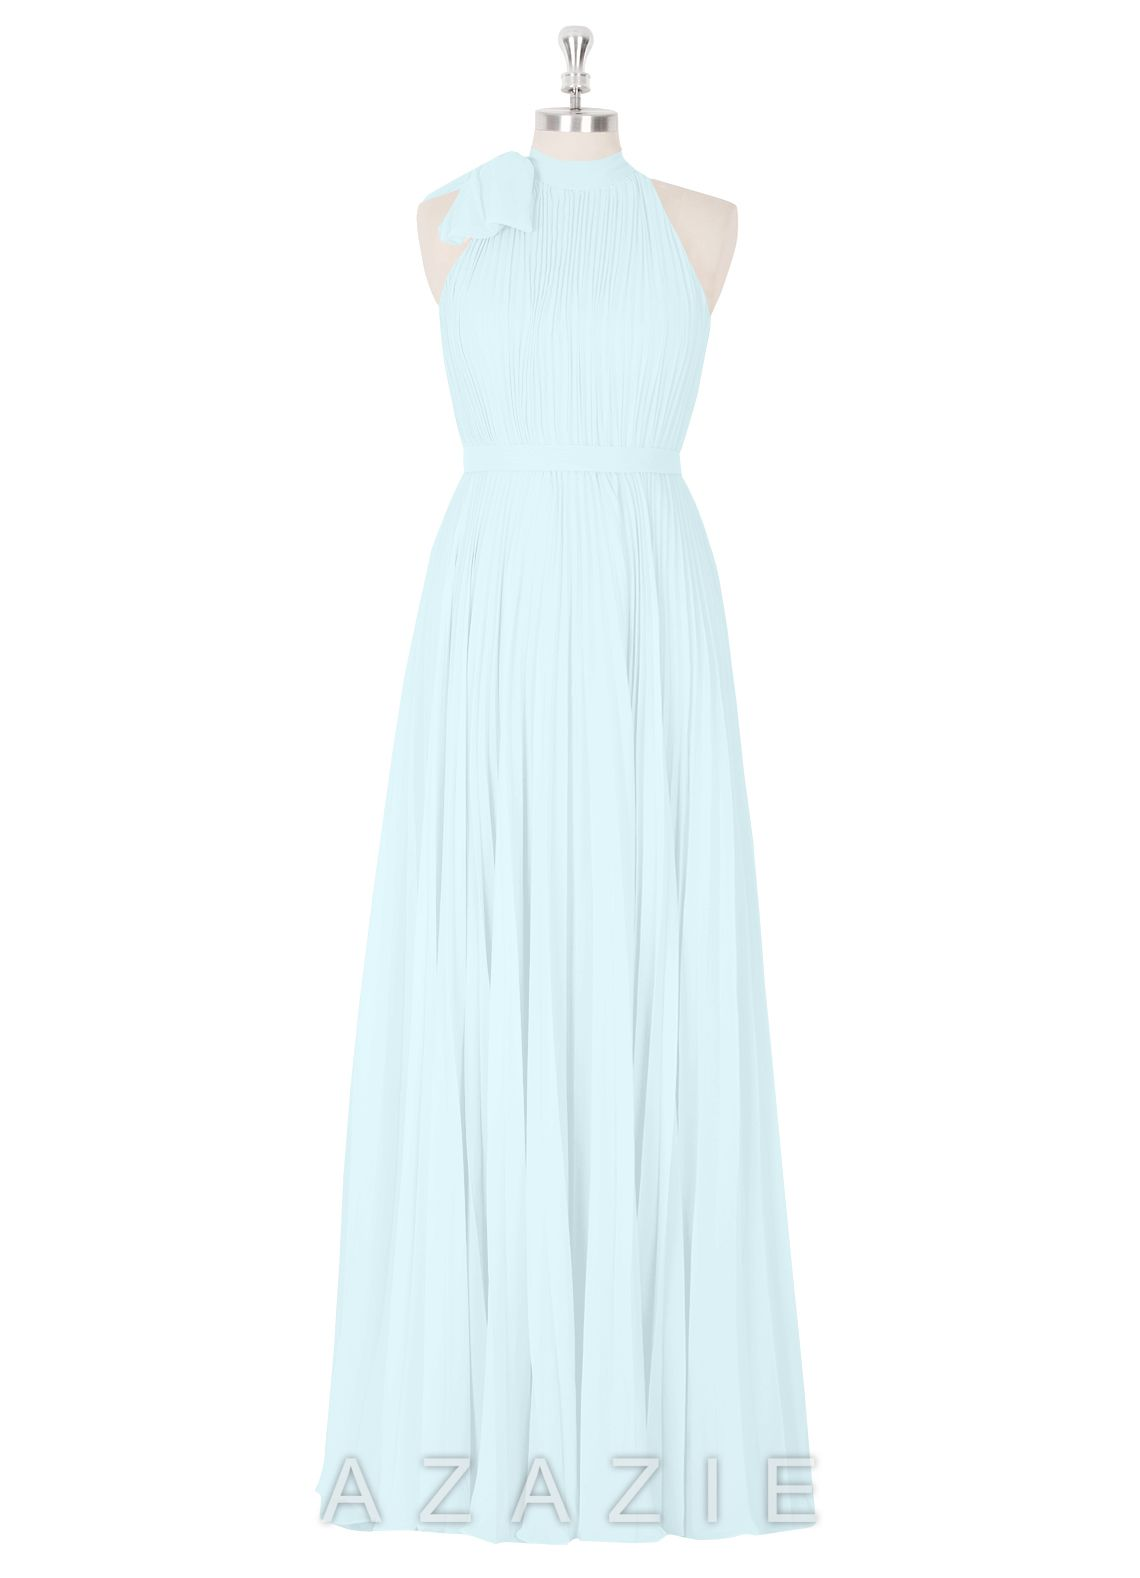 Azazie cailyn bridesmaid dress azazie mist matron of honor find the perfect made to order bridesmaid dresses for your bridal party in your favorite color style and fabric at azazie ombrellifo Images